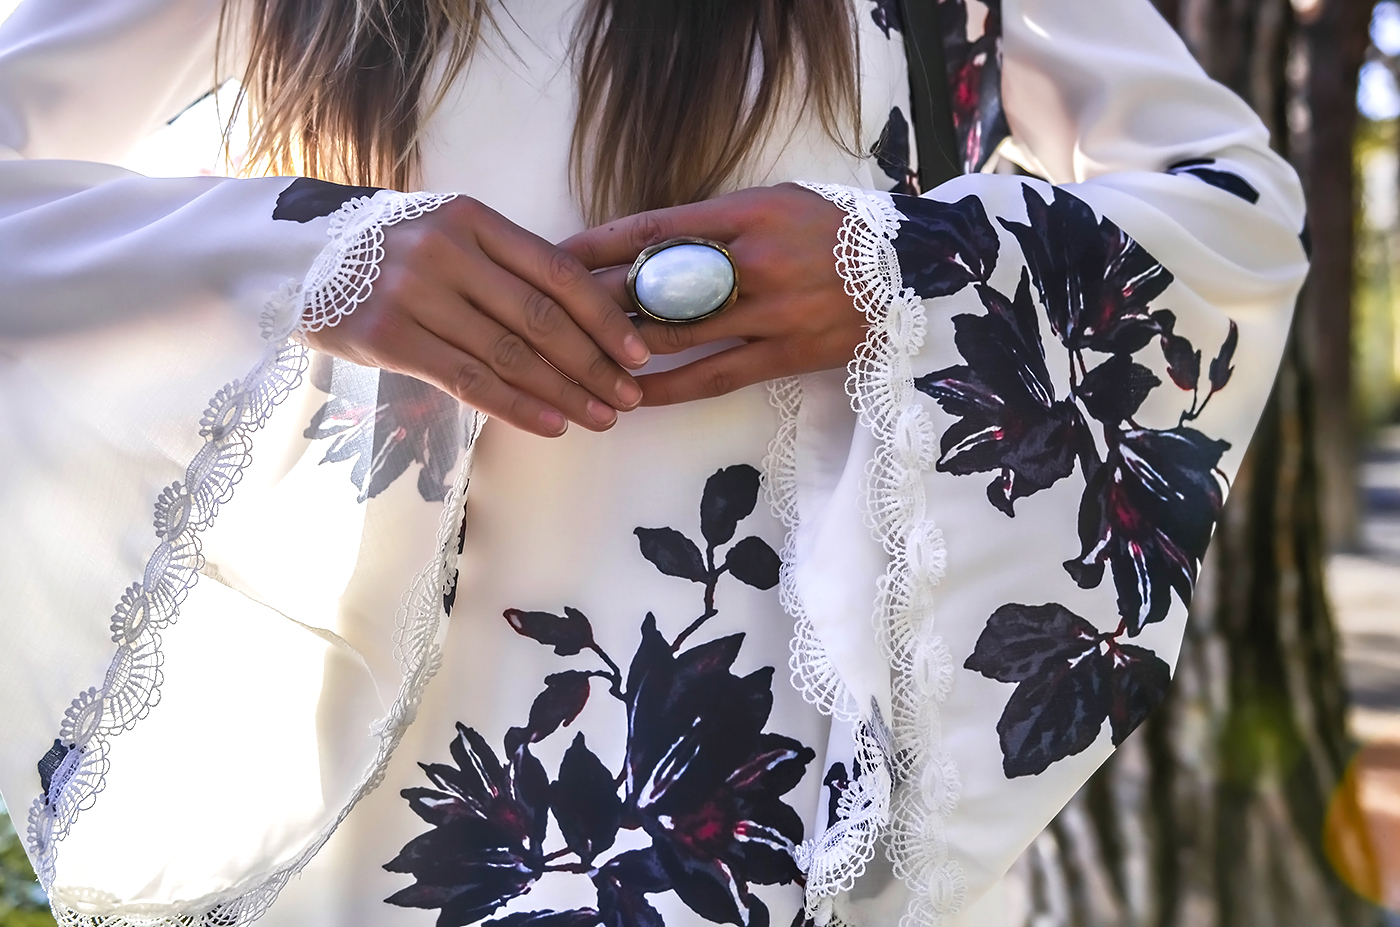 alison liaudat, blog from switzerland, swiss fashion blogger, blog mode suisse, gypsy look, sheinside look, nomad trend, beauty blogger, bell sleeve, all white outfit,